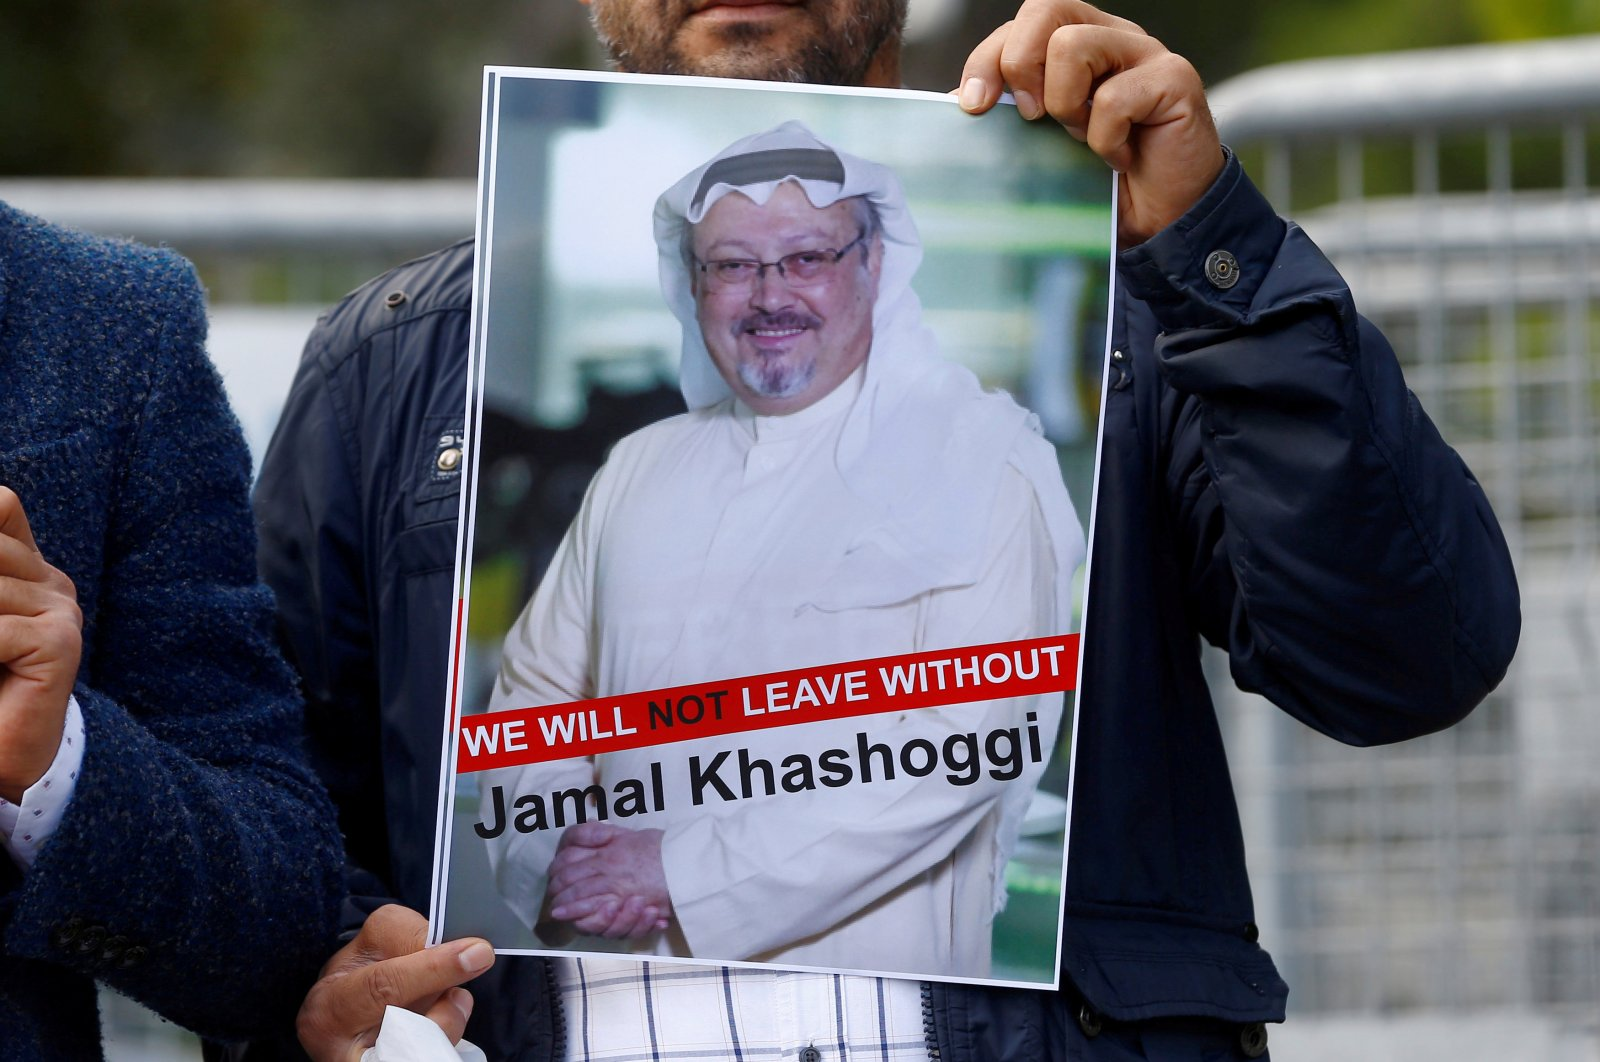 A demonstrator holds a picture of Saudi journalist Jamal Khashoggi during a protest in front of Saudi Arabia's consulate in Istanbul, Oct. 5, 2018. (Reuters Photo)